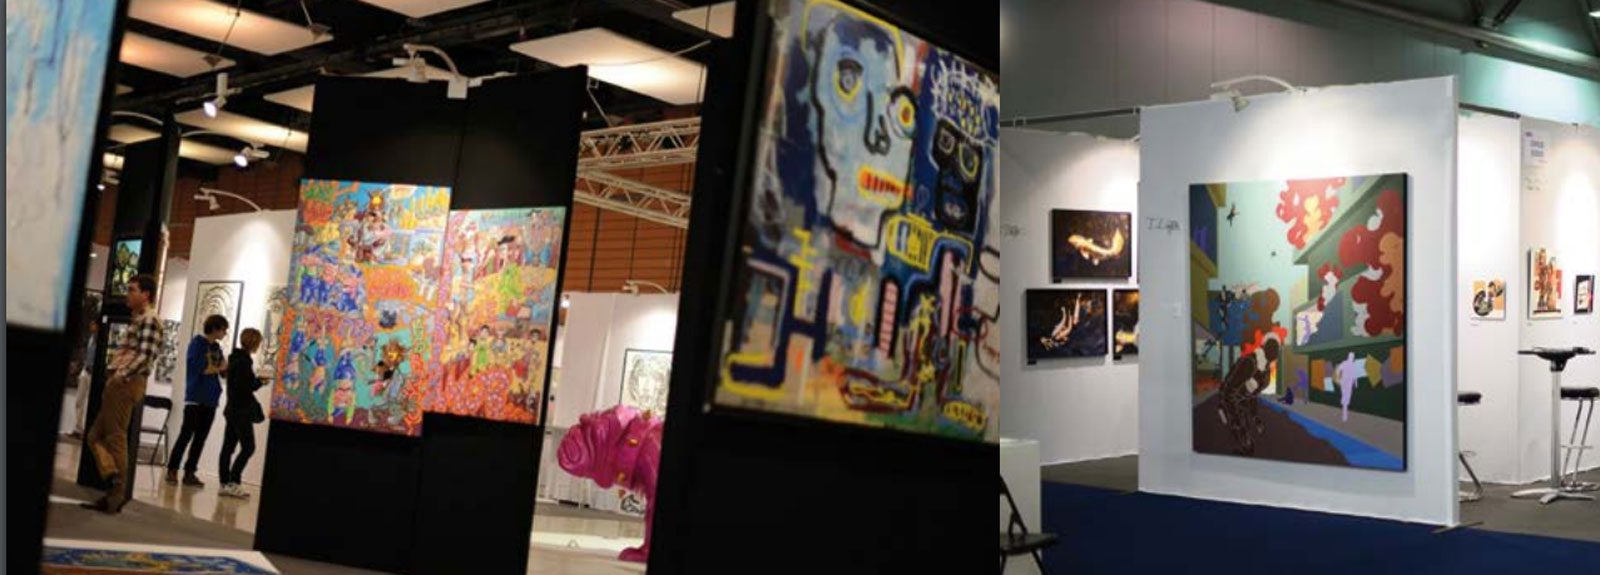 salon d art contemporain art3f metz 2016